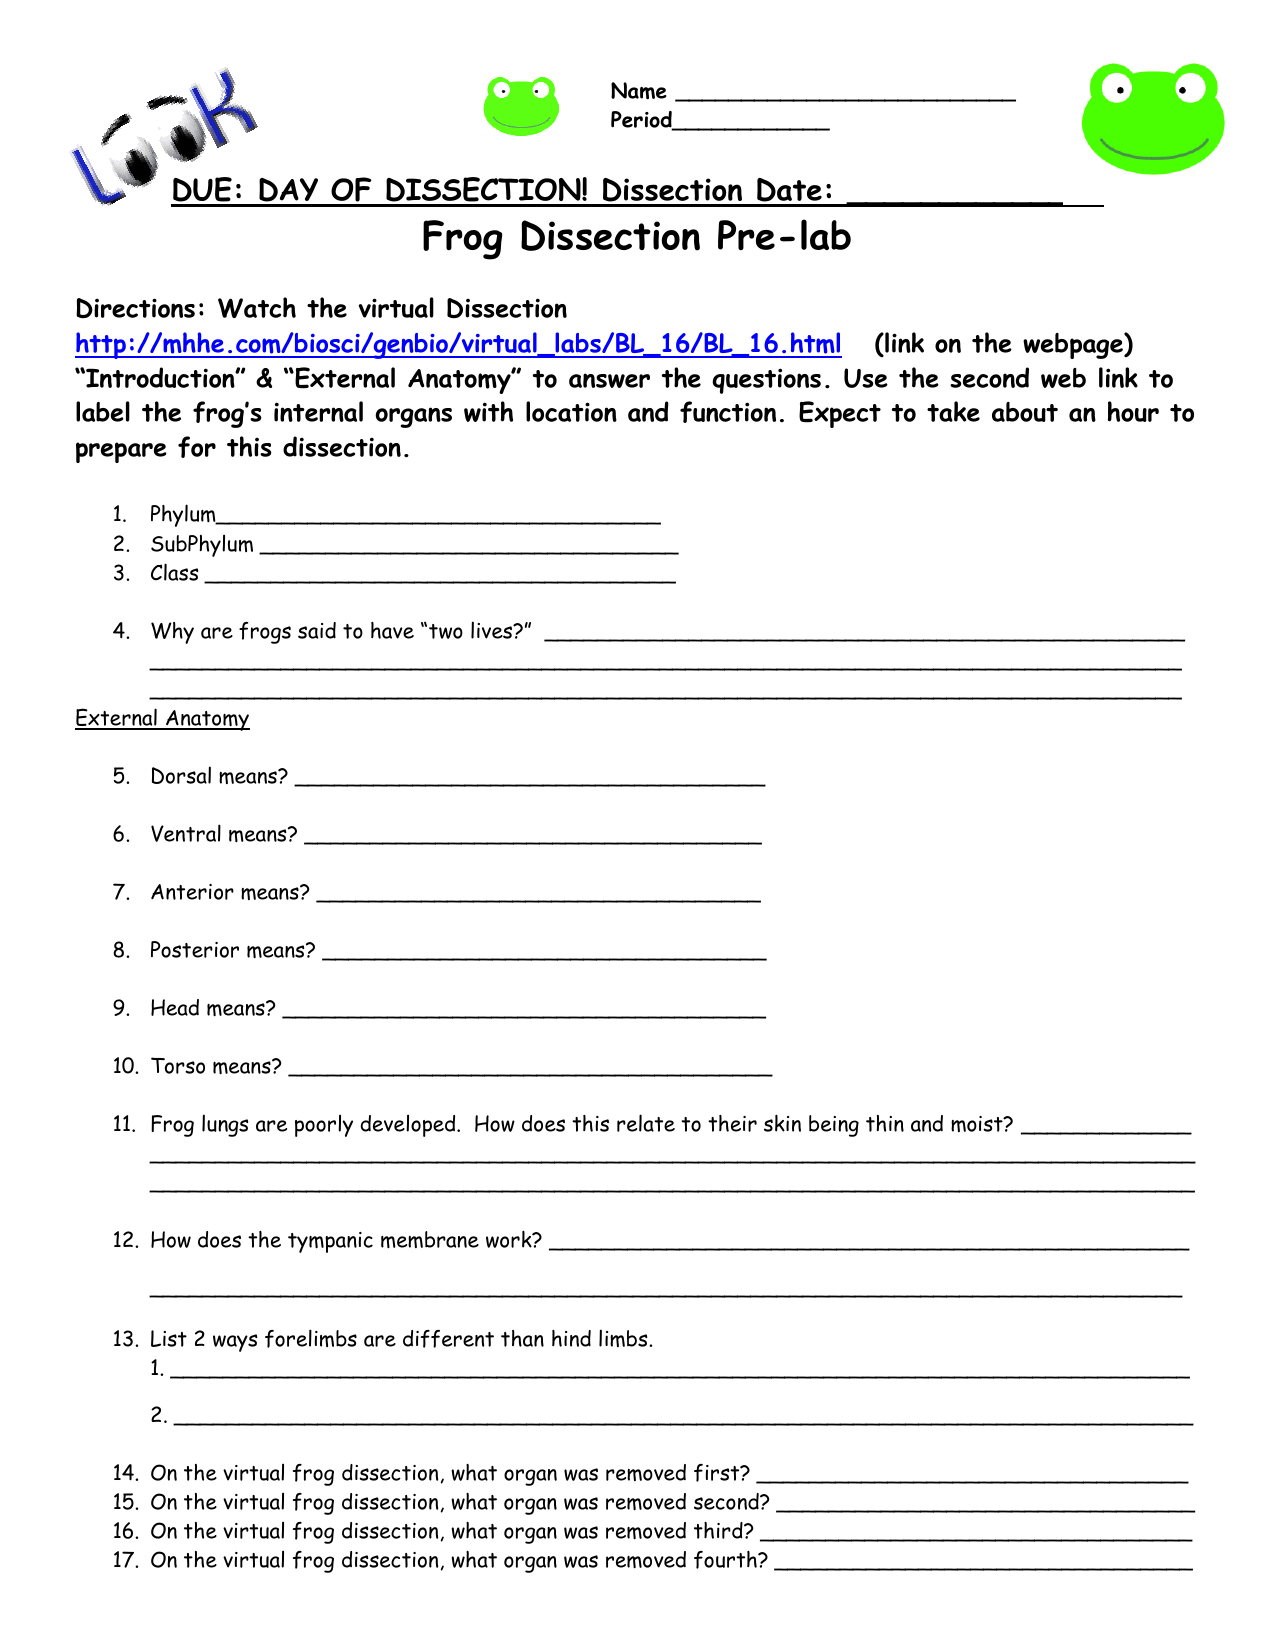 Biology Junction Frog Dissection Worksheet Answer Key